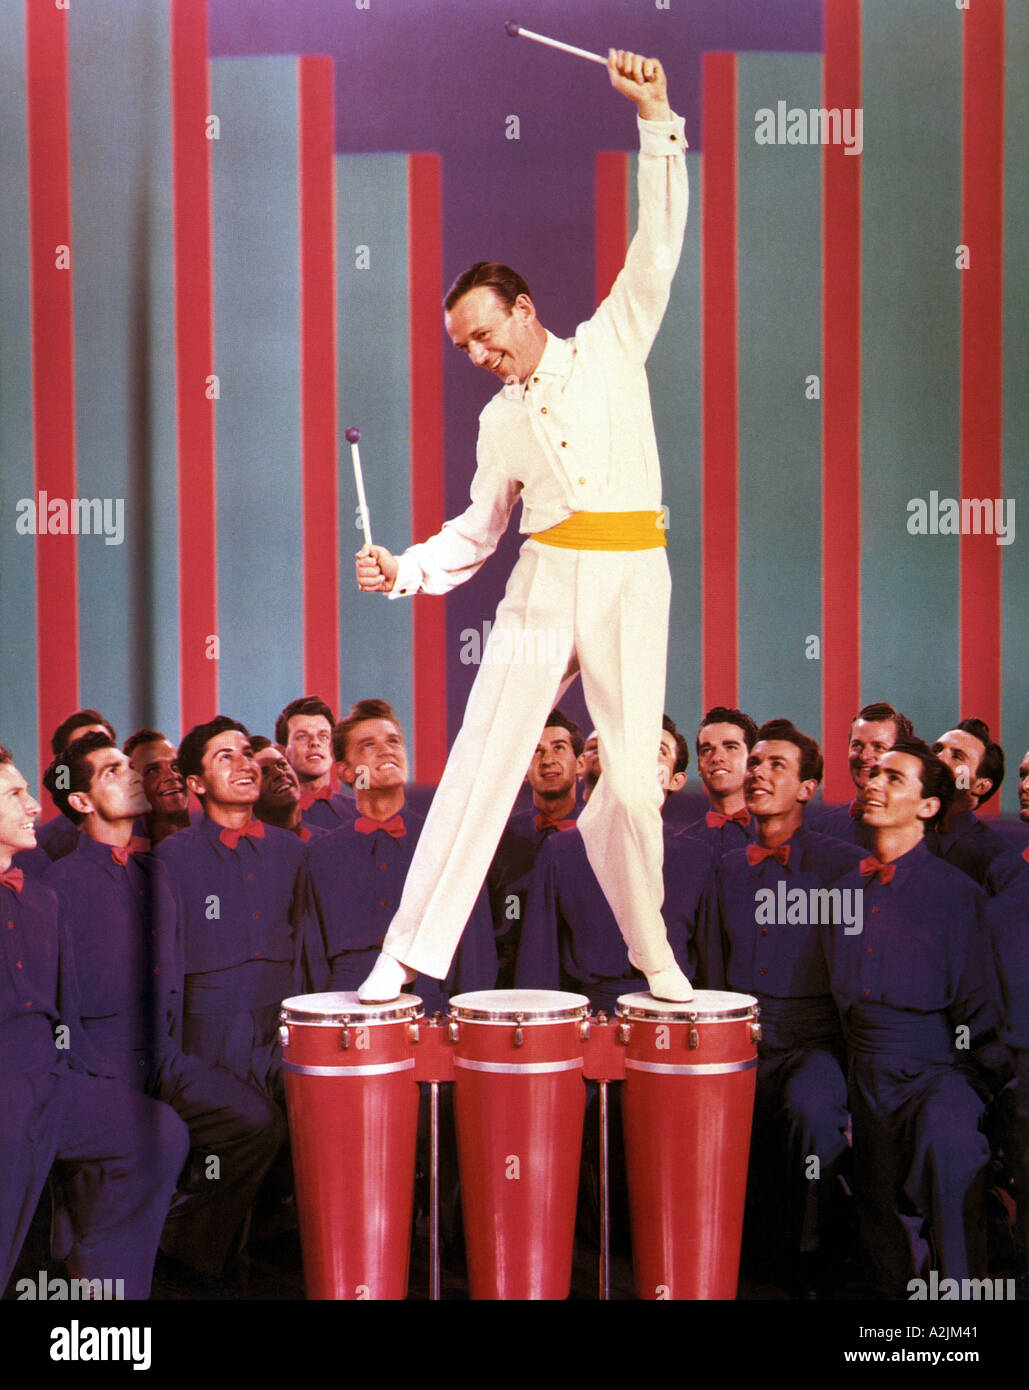 FRED ASTAIRE 1899 1987 American actor and dancer - Stock Image